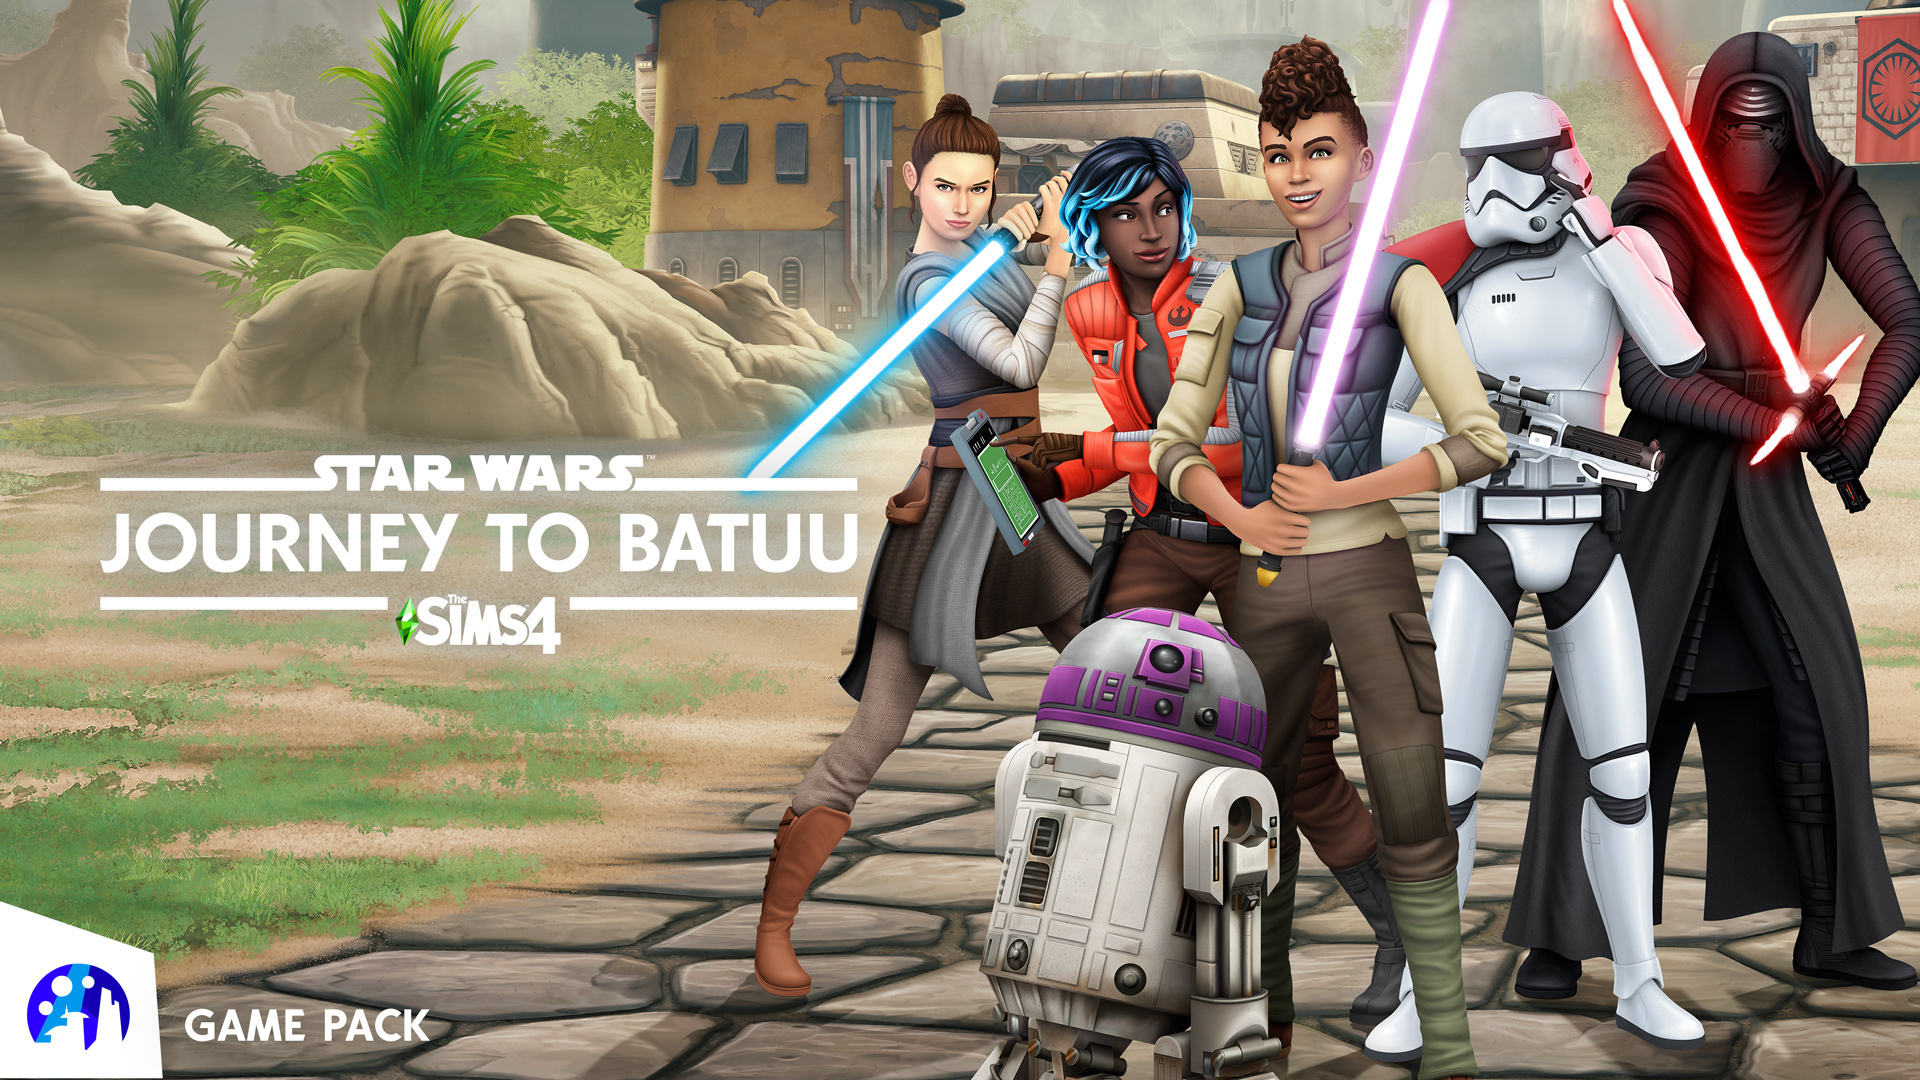 Los Sims 4 Star Wars